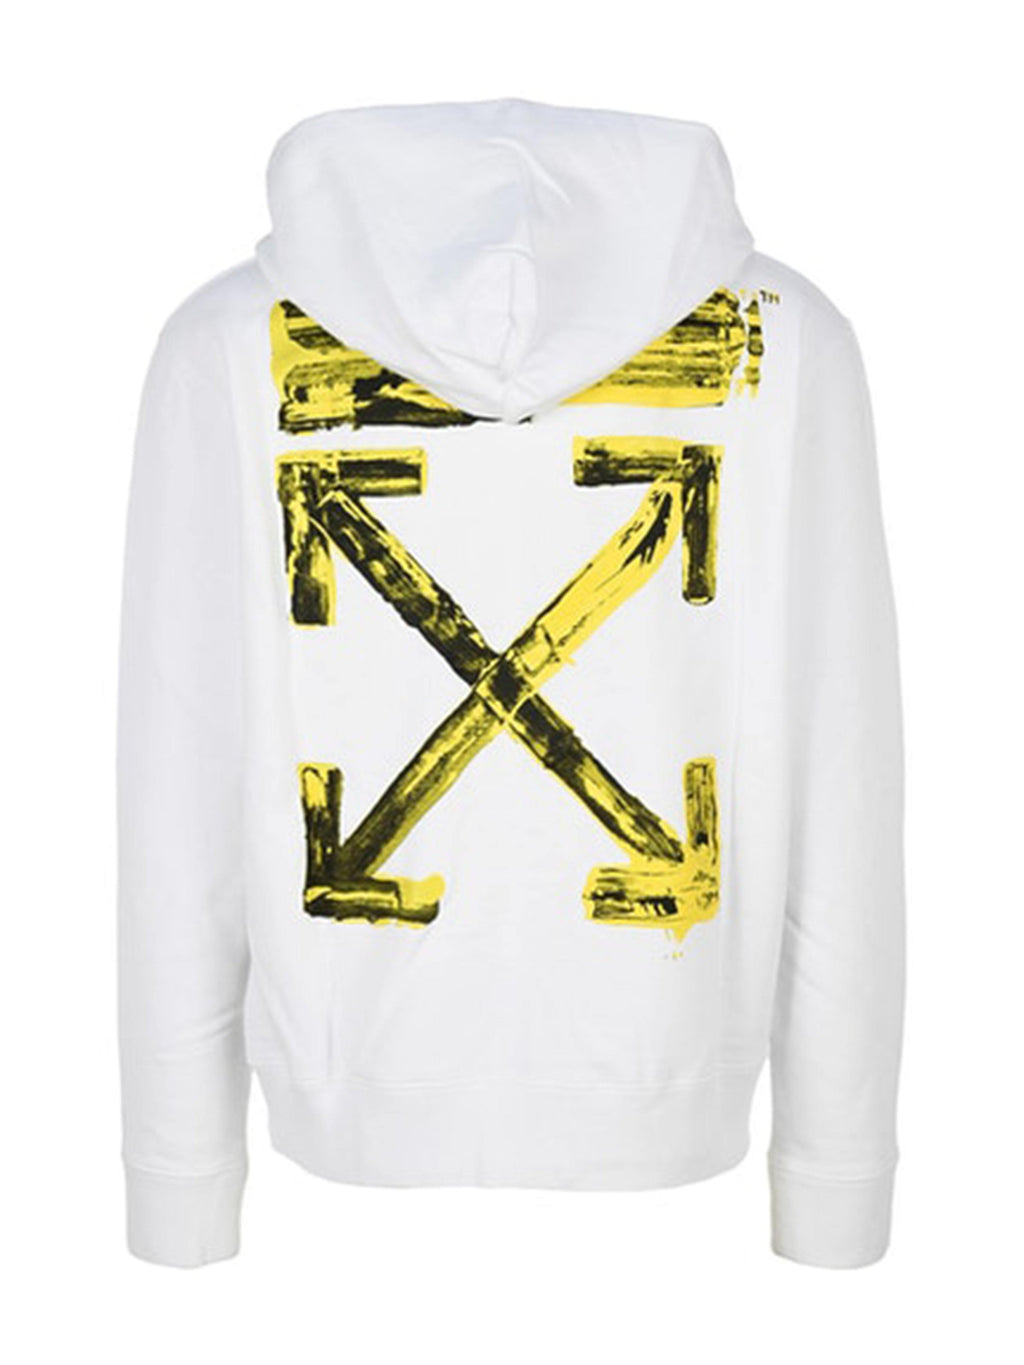 OFF-WHITE Acrylic Arrows Slim Fit Hoodie White/Yellow - PRIOR